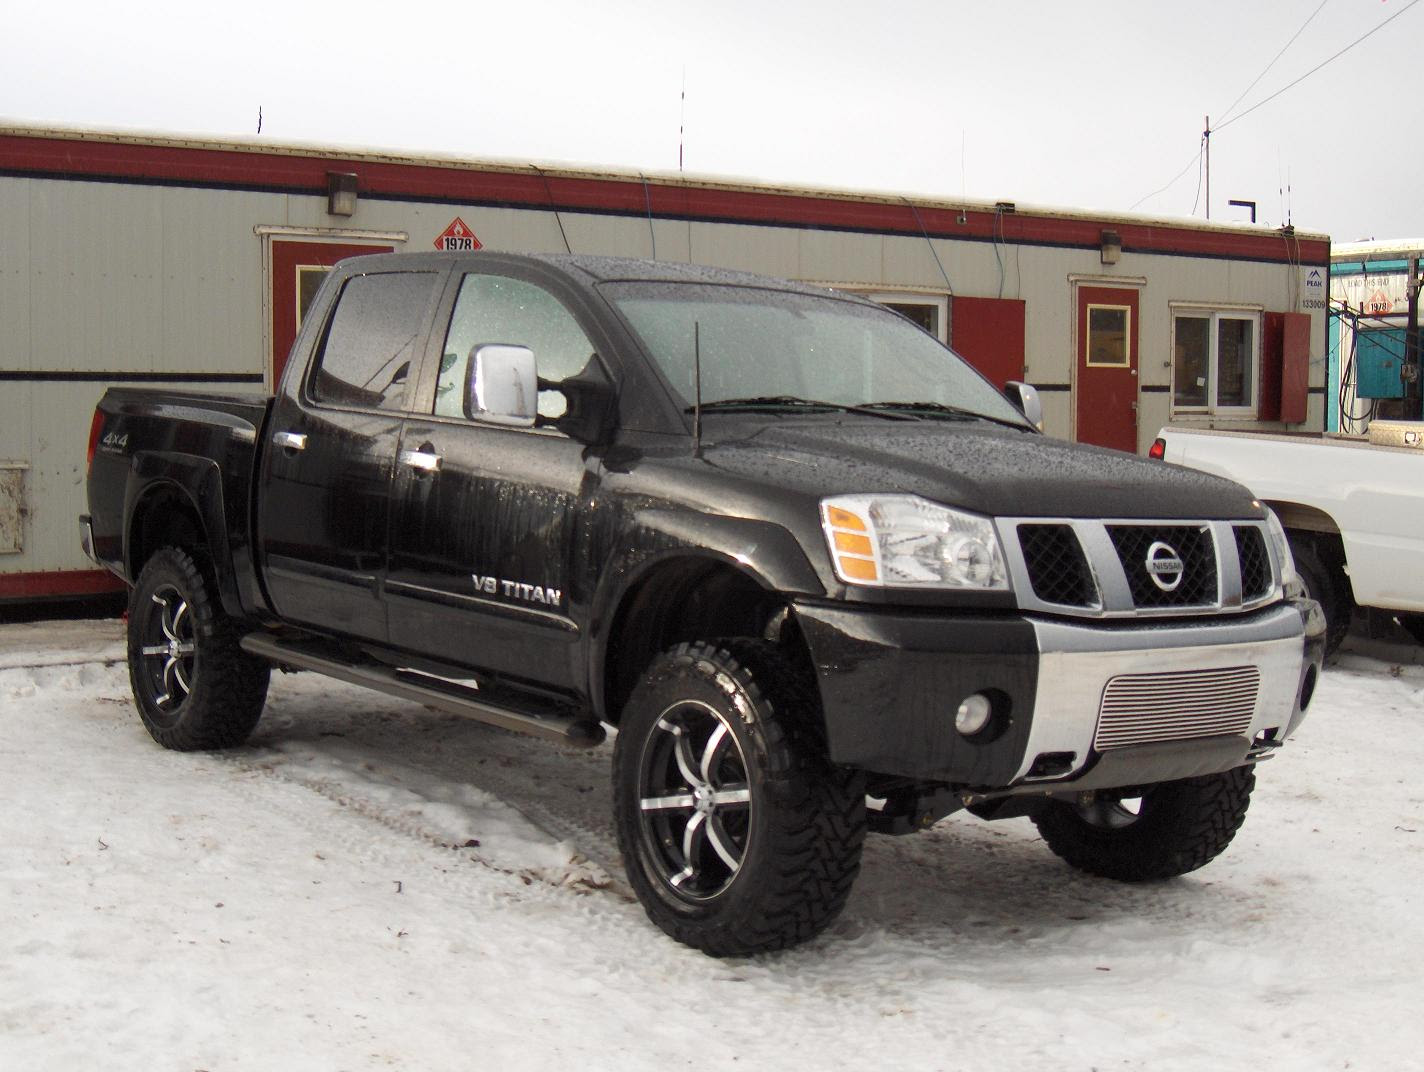 Lifted Nissan Titan 4X4 For Sale hd image